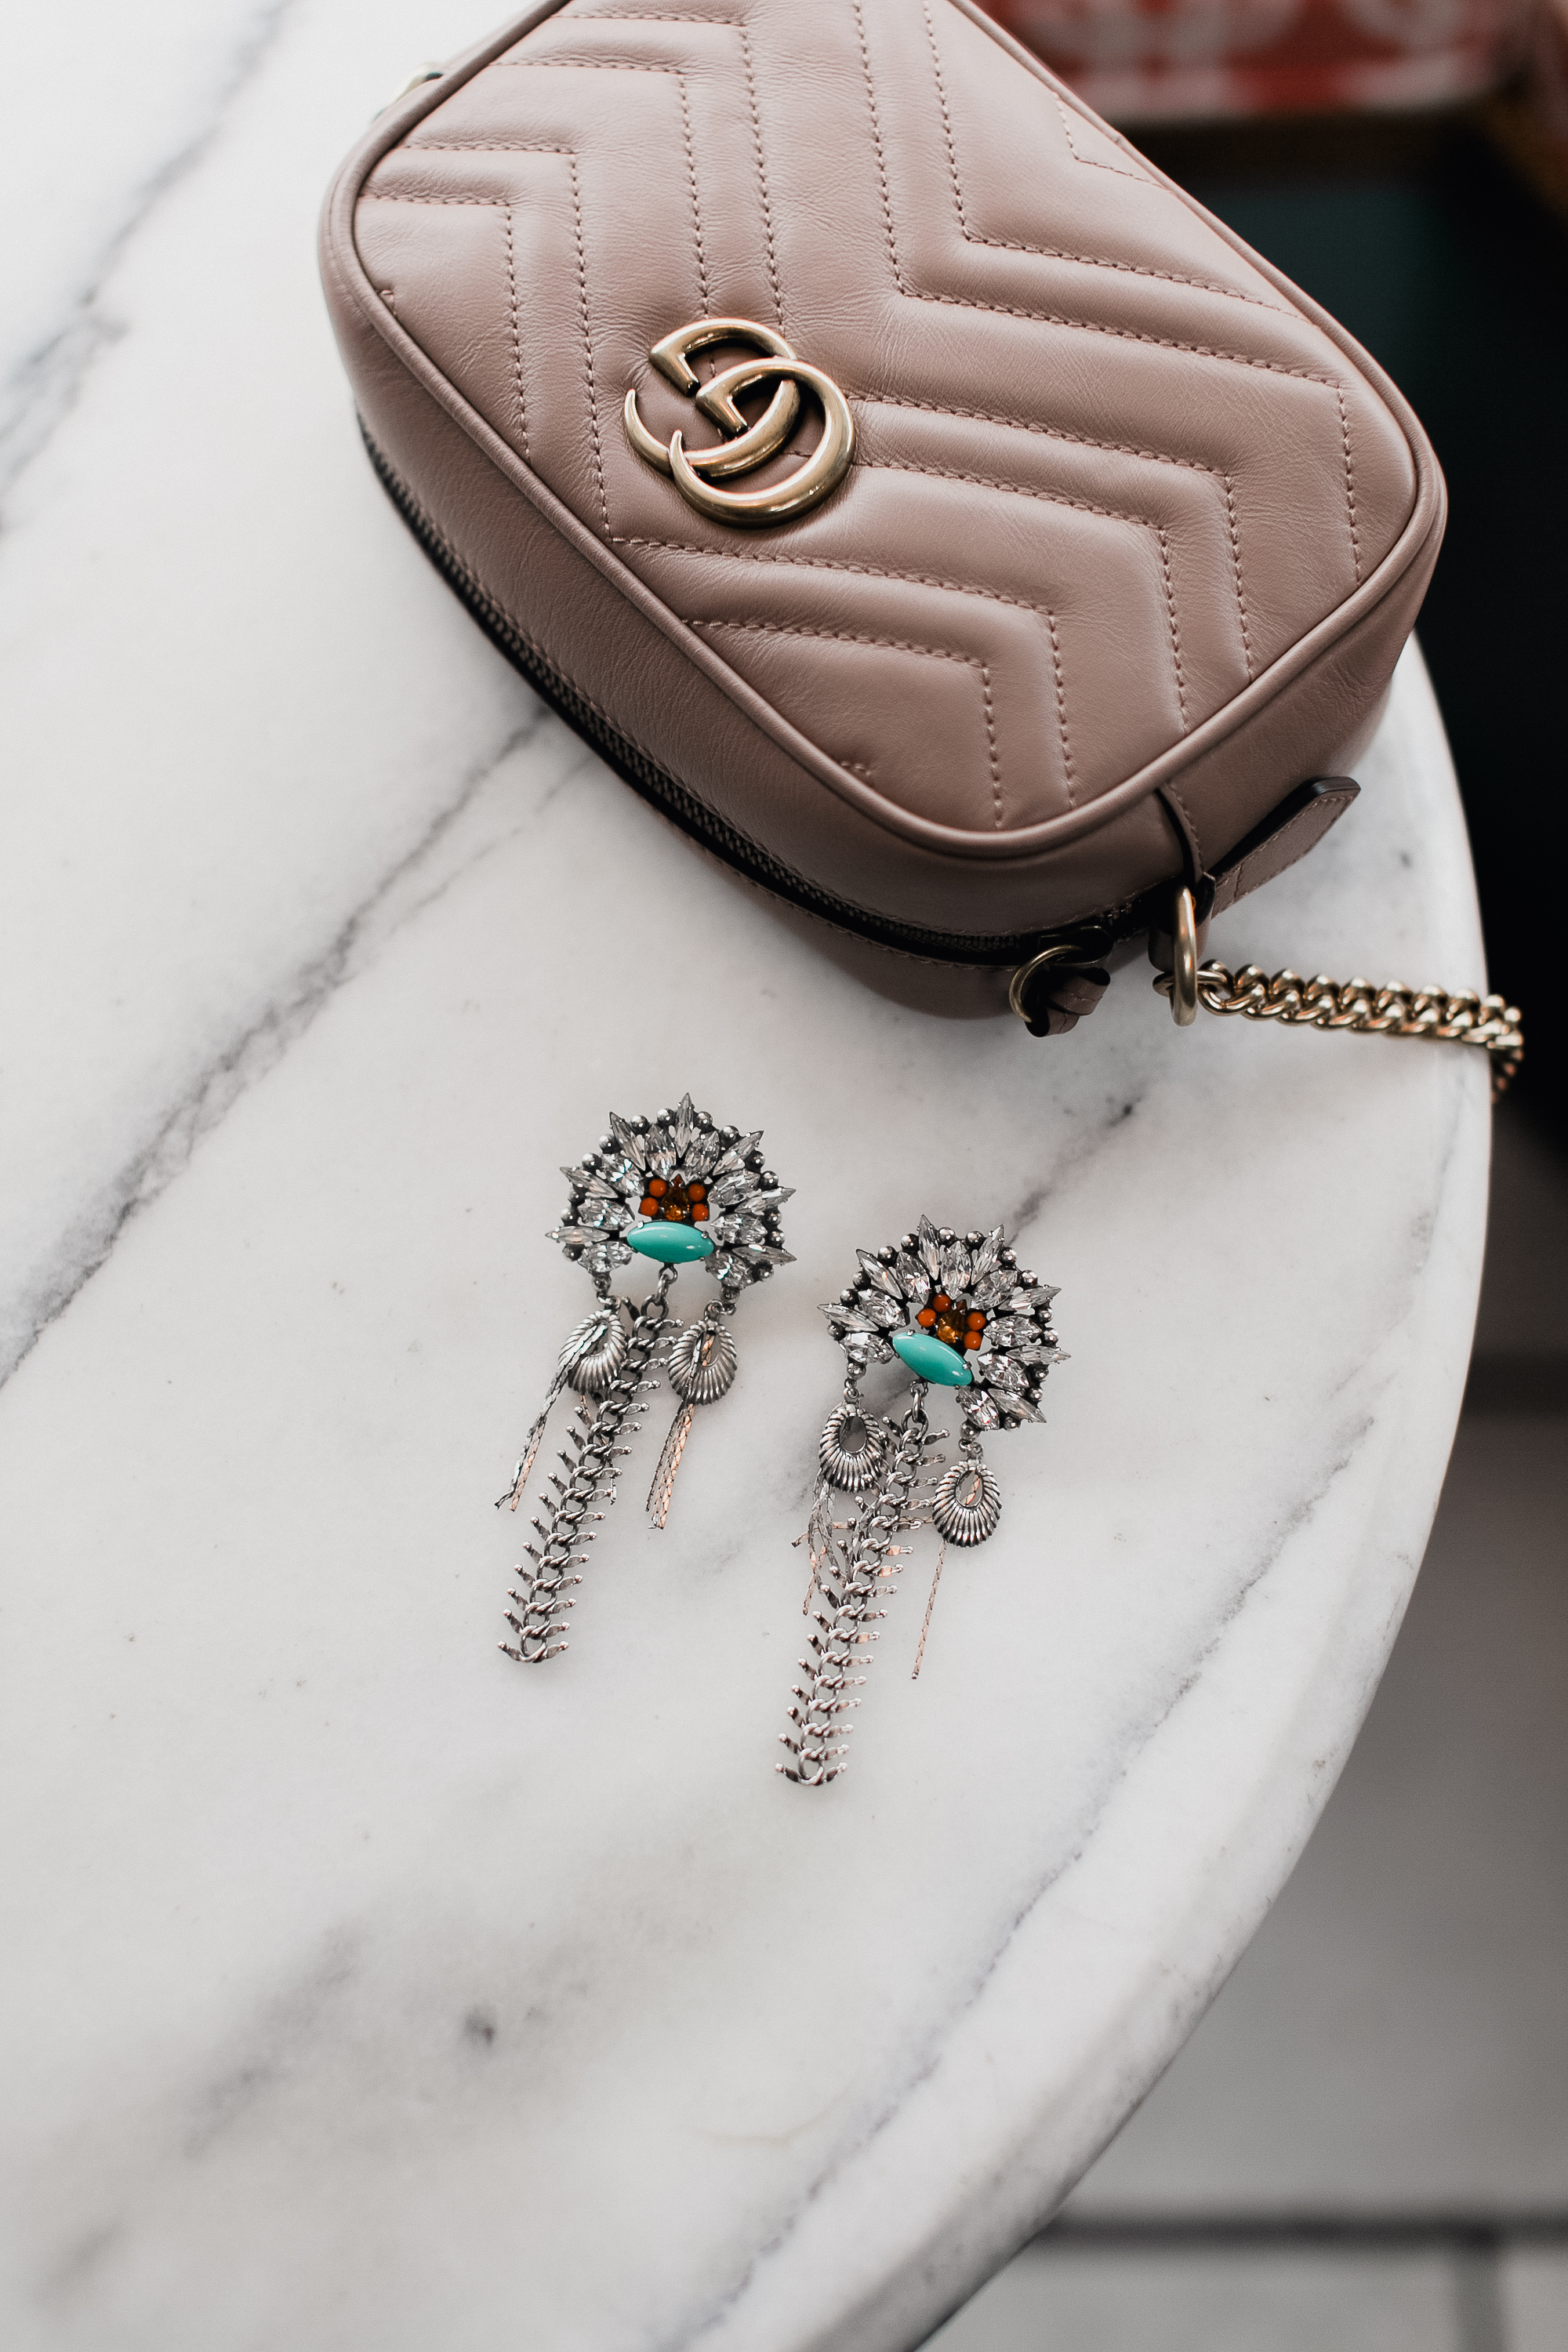 Tan Gucci Bag from Net-A-Porter and Dannijo Earrings